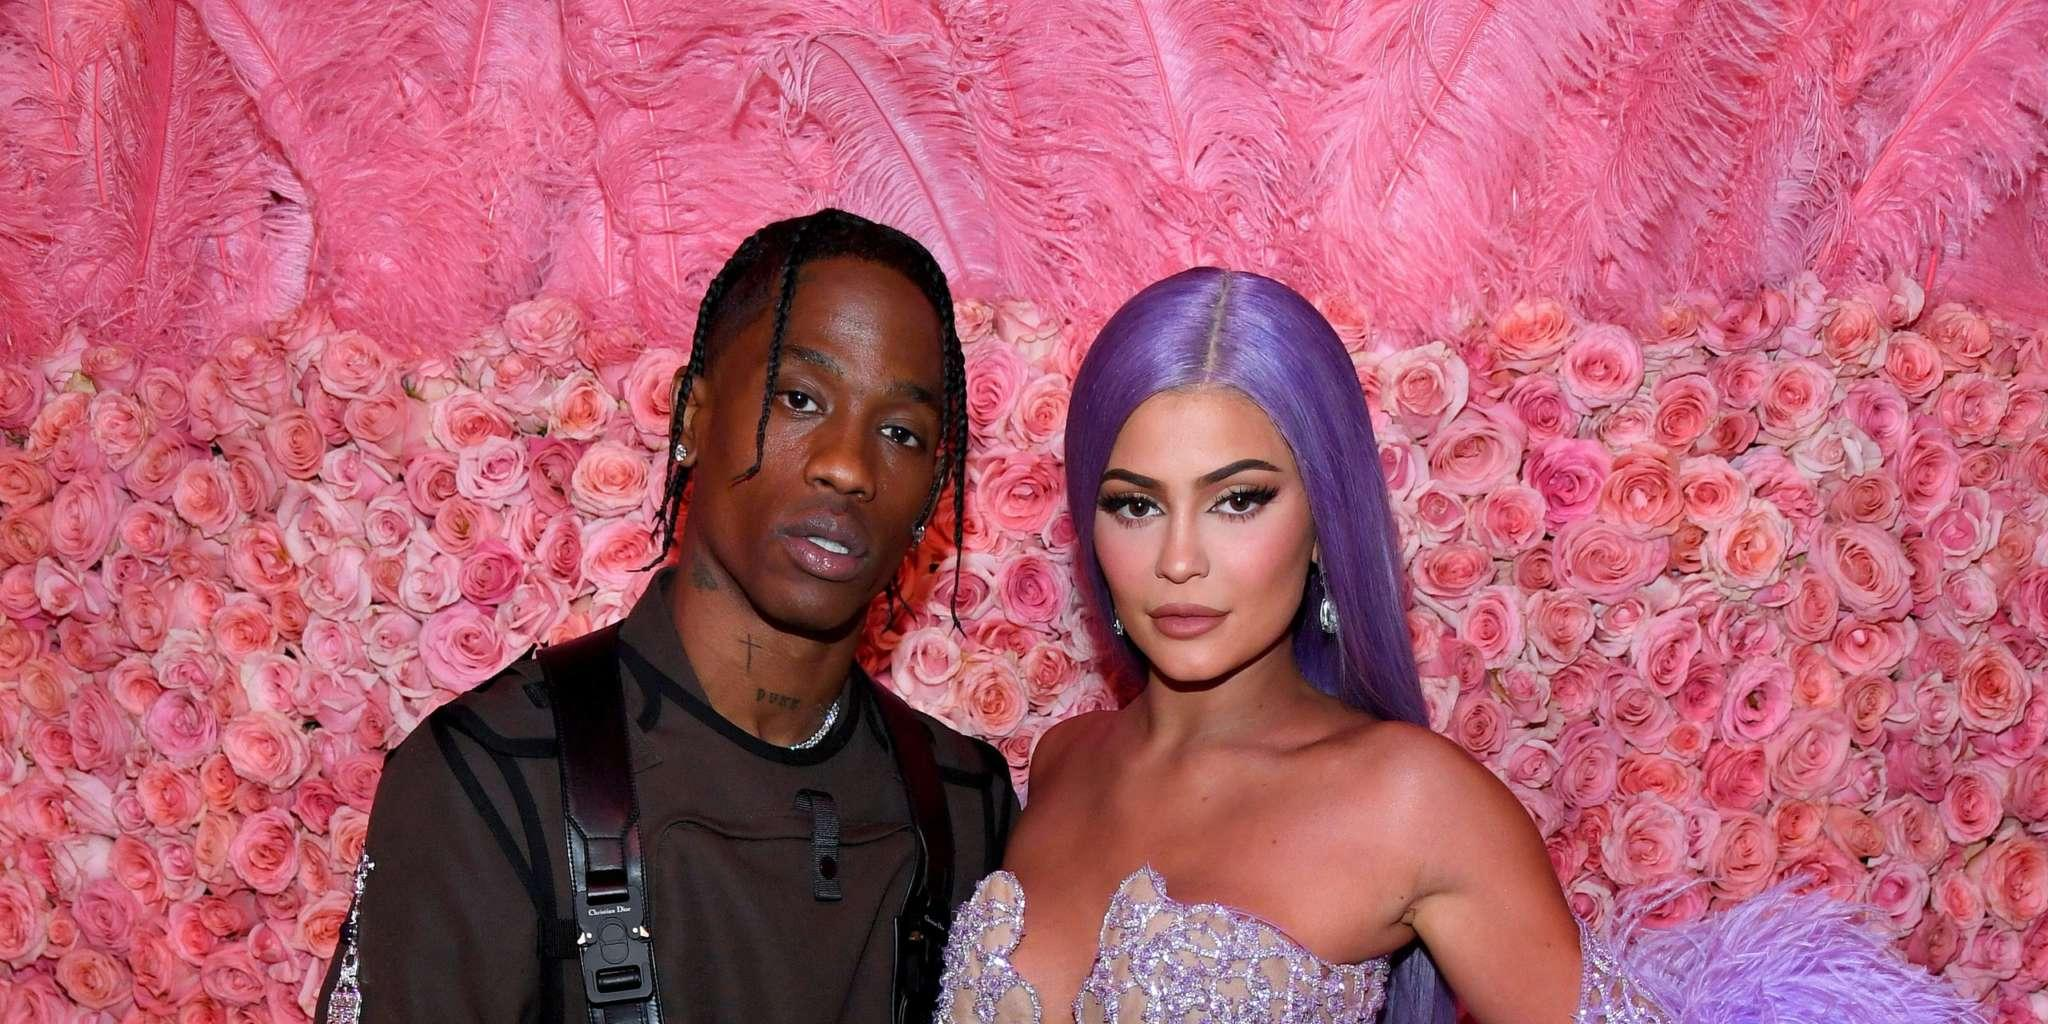 Kylie Jenner Reads Books About Soul Mates After Getting Back Together With Her Baby Daddy, Travis Scott